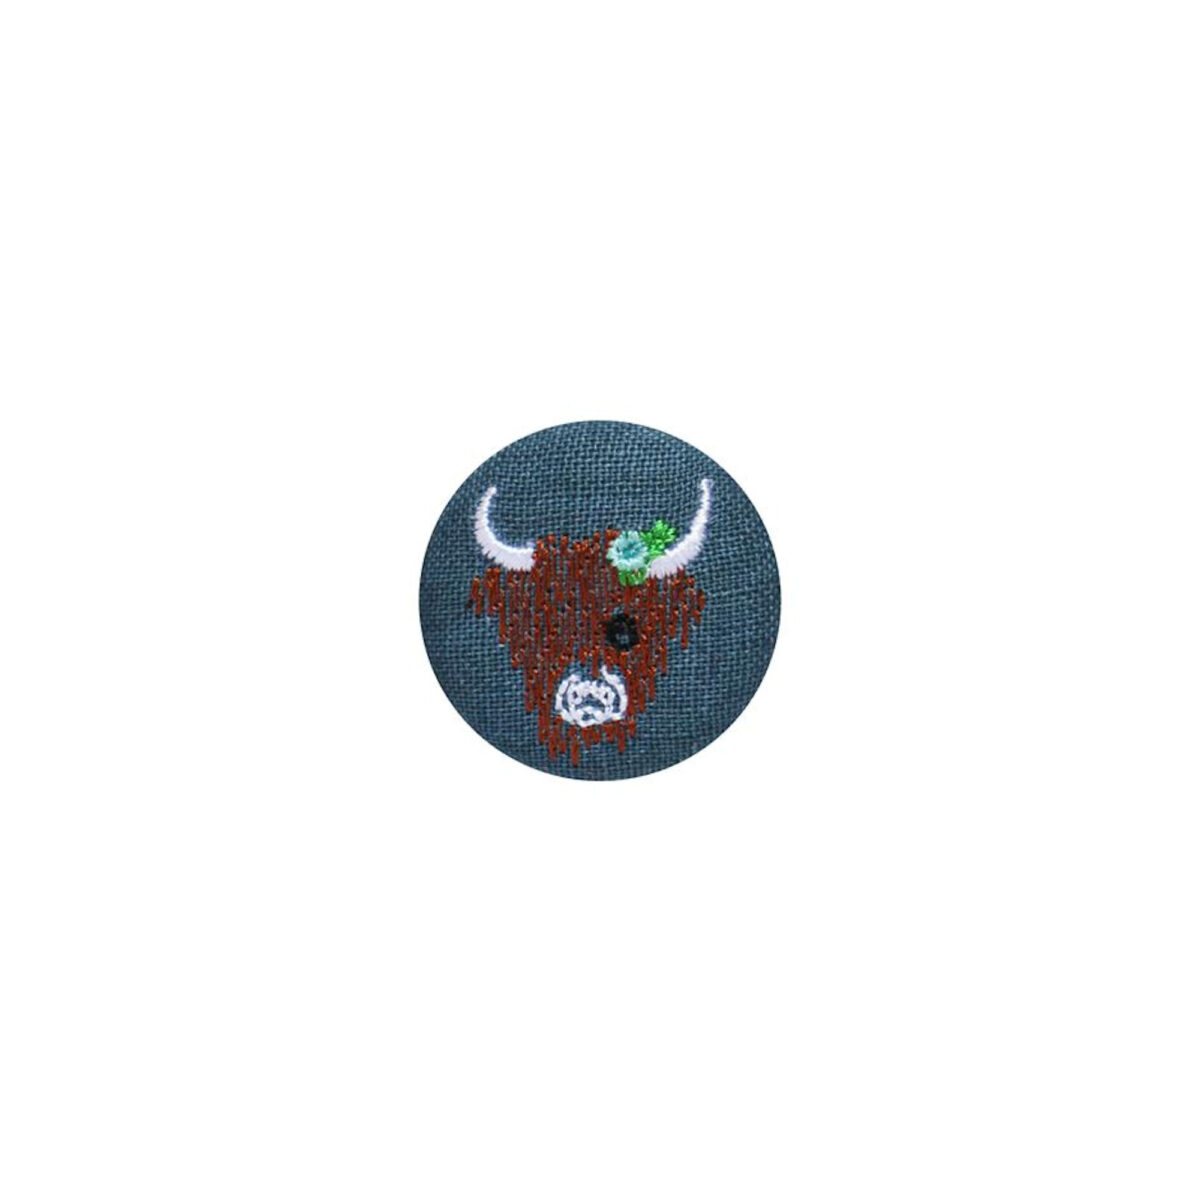 Blue/Grey Highland Cow Badge